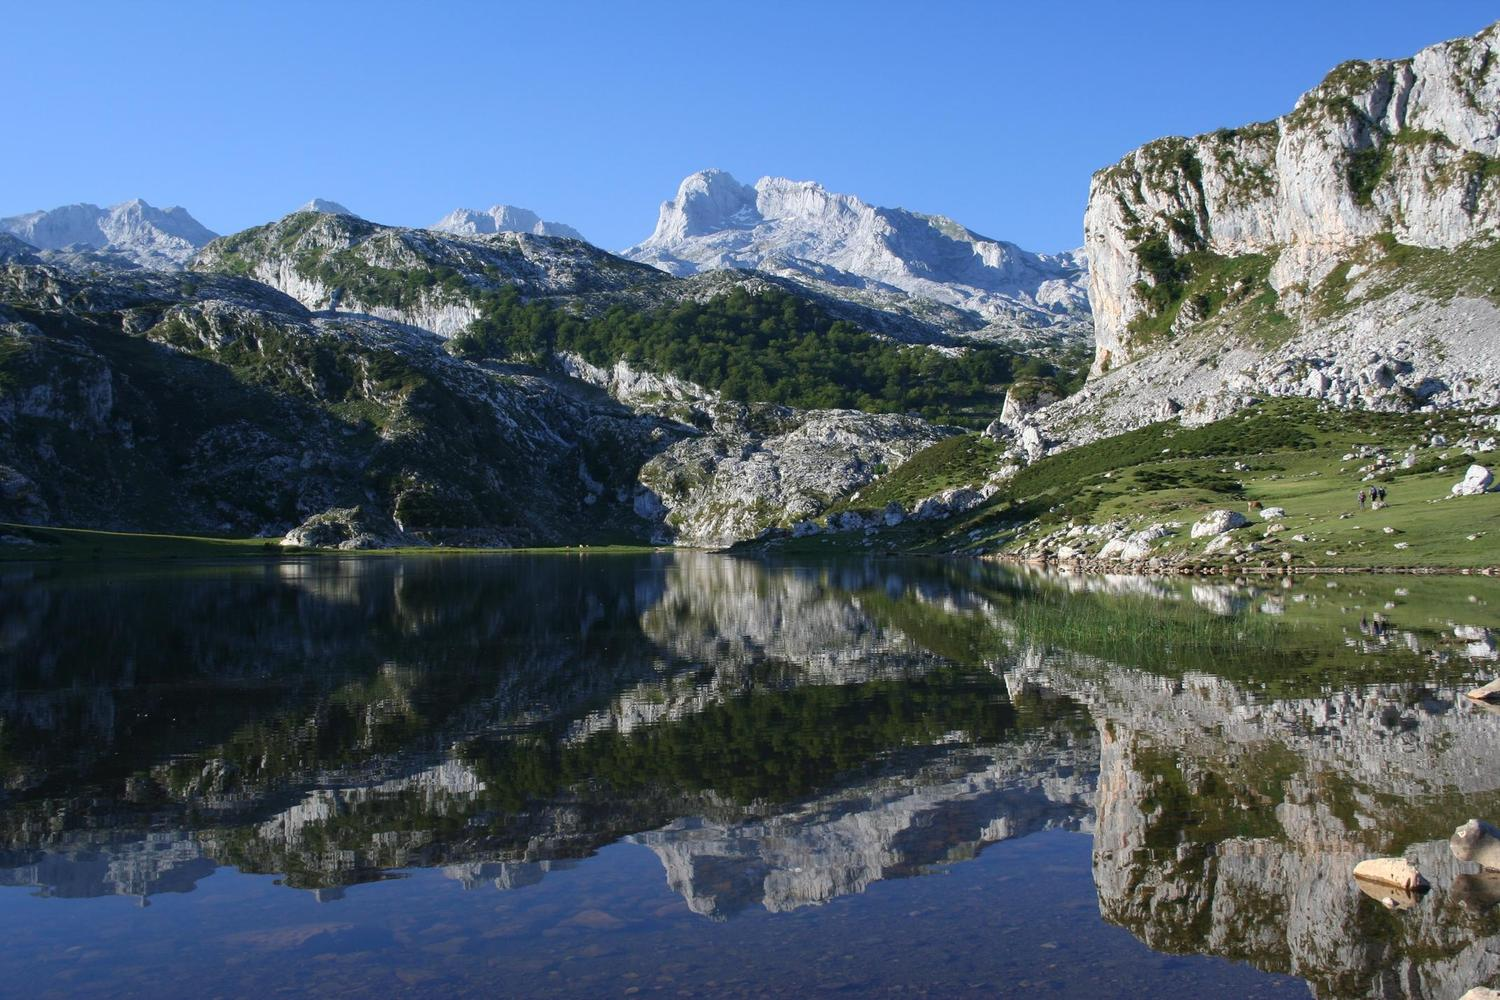 The beautiful lakes of Covadonga in Picos de Europa